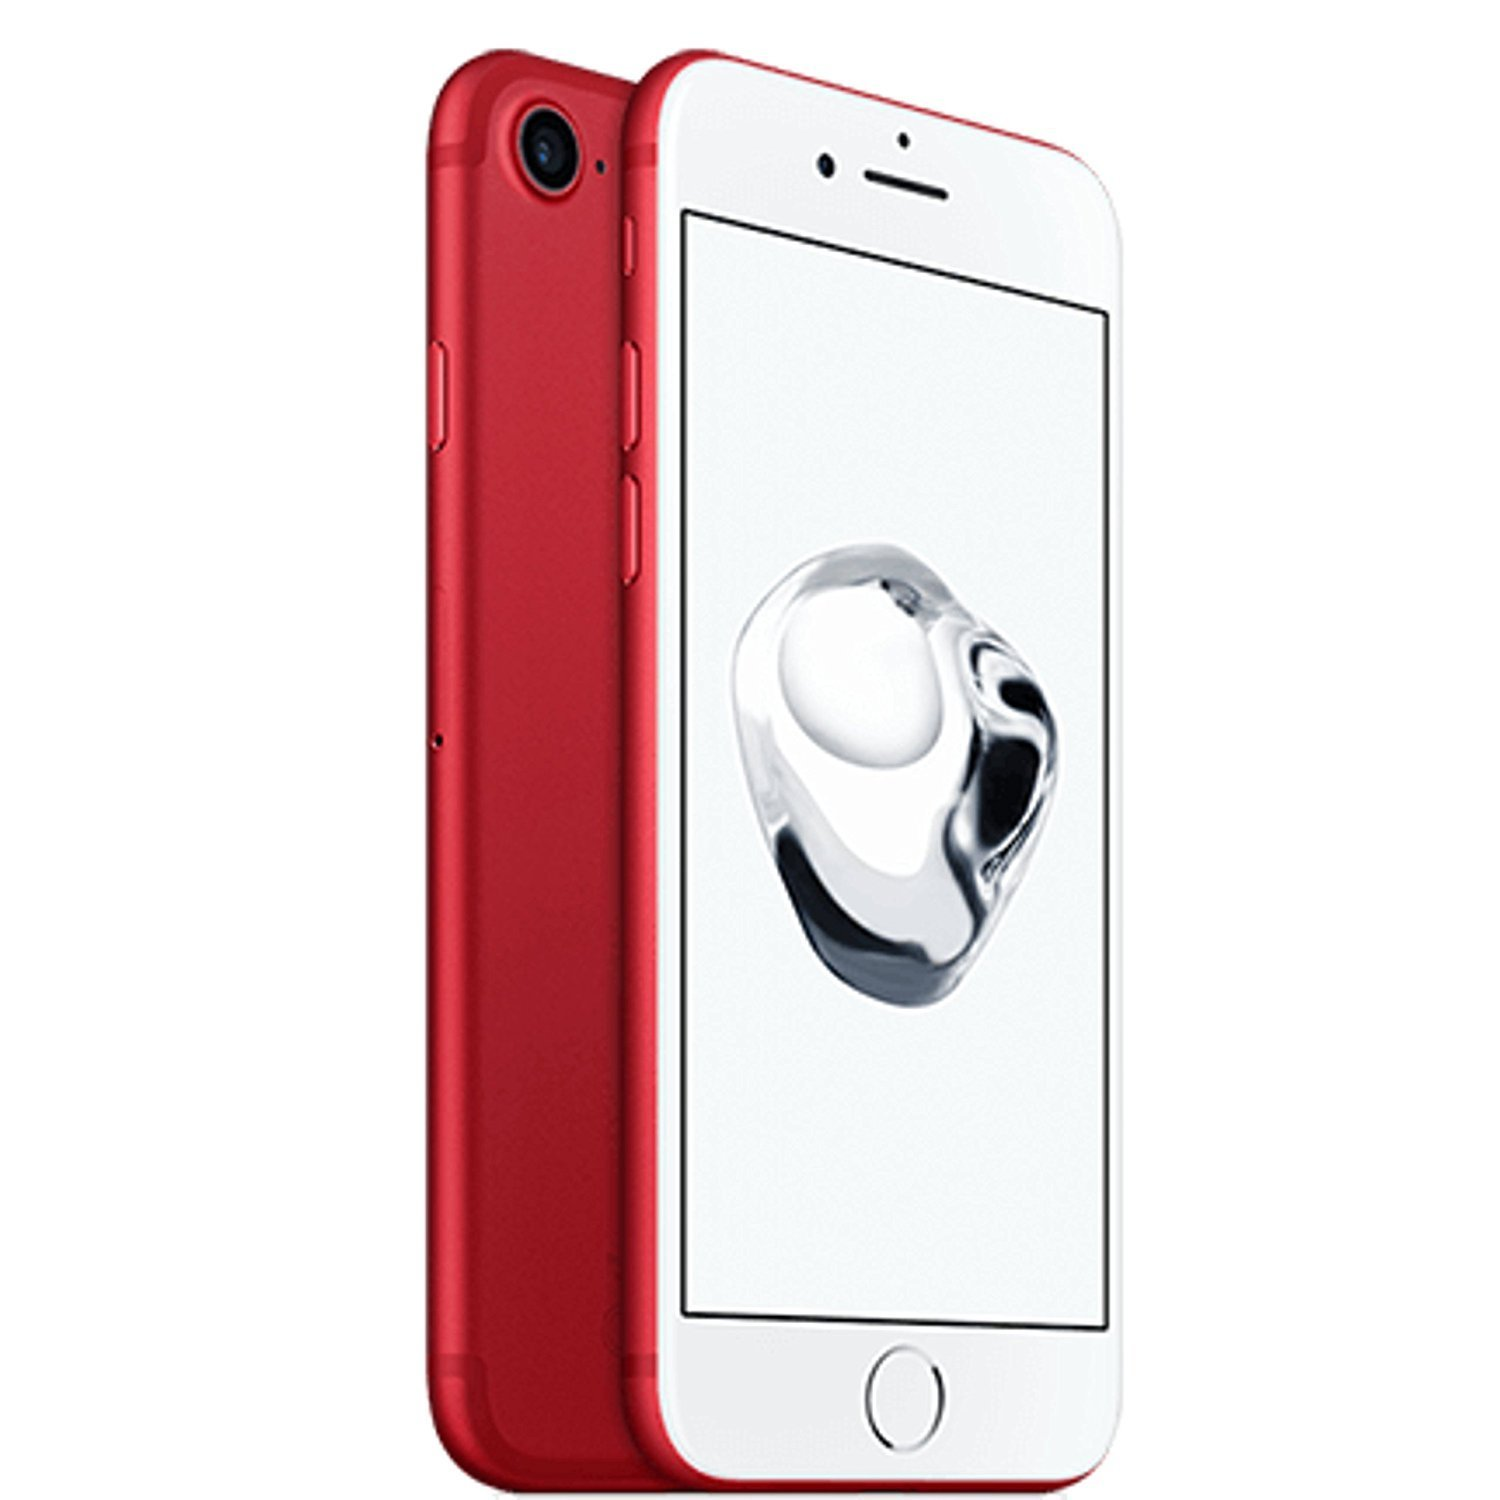 Apple iPhone 7, AT&T, 128GB - Red (Renewed) by Apple